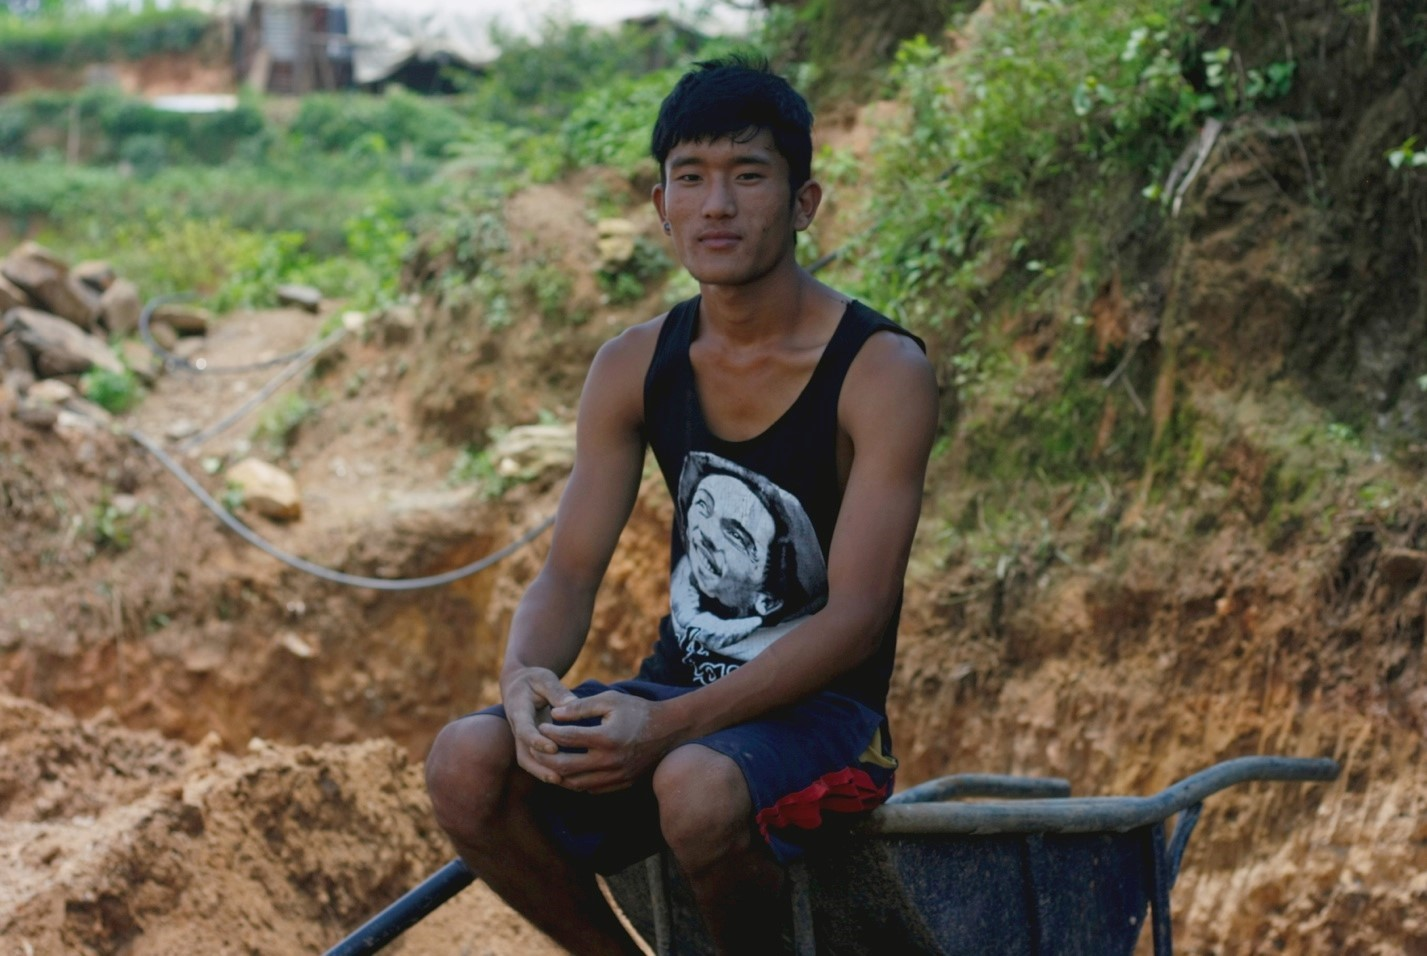 Gopi Tamang on the new patch of land he is helping to make level for the construction of his new house